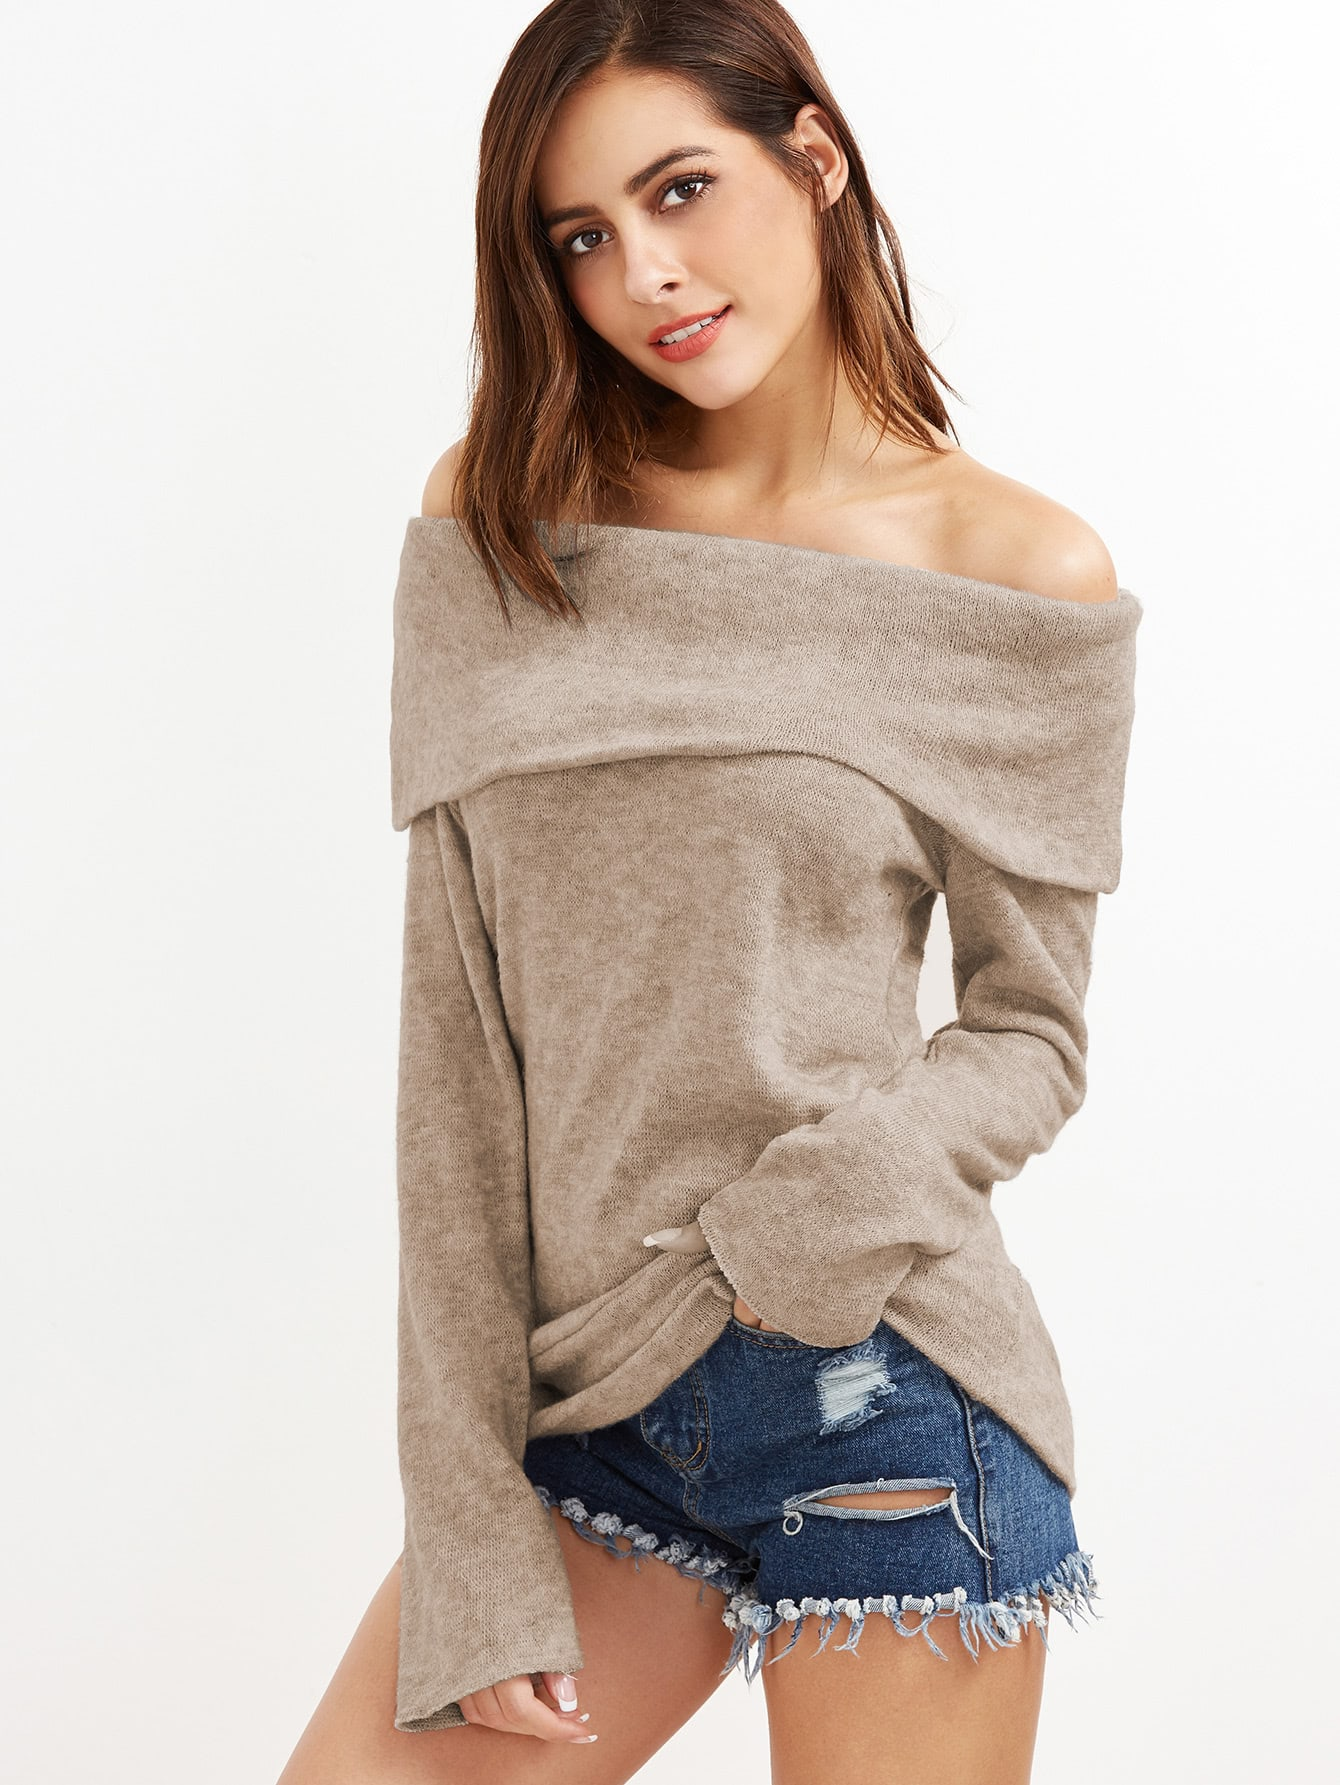 Khaki Off The Shoulder Foldover Knit T-shirt tee161207106